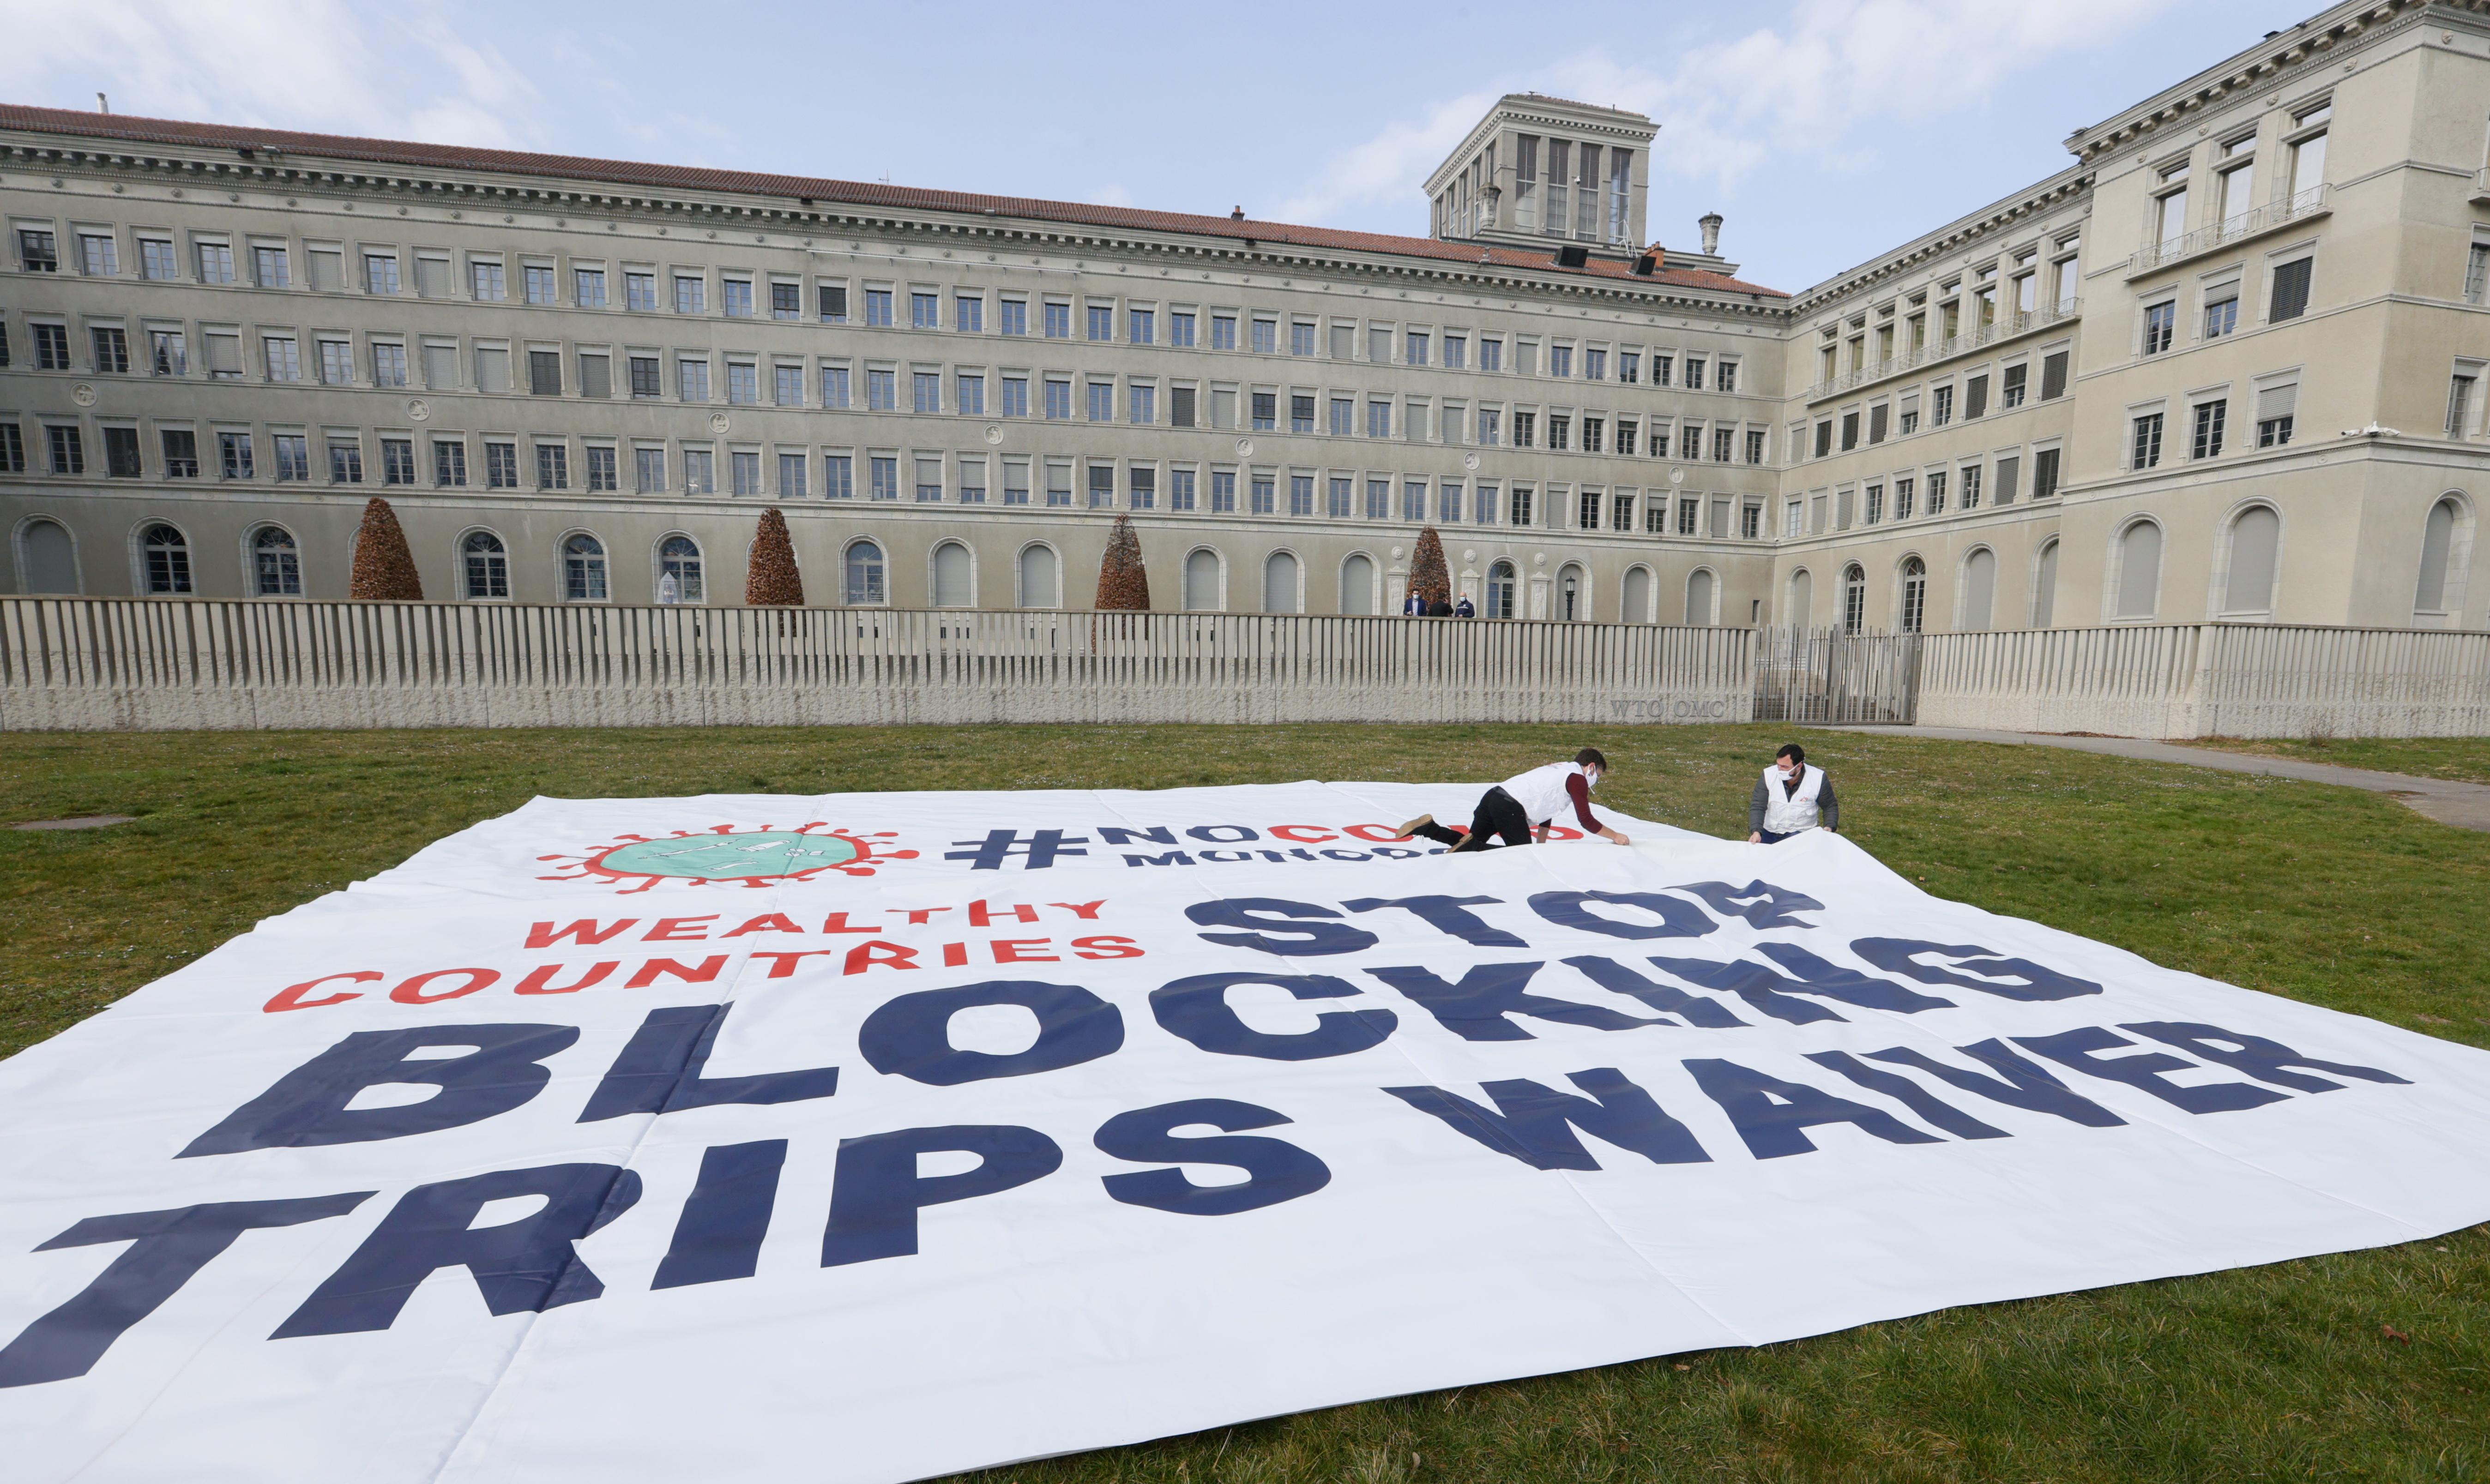 Members of aid group Doctors Without Borders (MSF) demonstrate outside the World Trade Organization to waive intellectual property rights on coronavirus disease (COVID-19) drugs ahead of next week meeting on WTO's Trade-Related Aspects of Intellectual Property (TRIPS) agreement in Geneva, Switzerland March 4, 2021.  REUTERS/Denis Balibouse